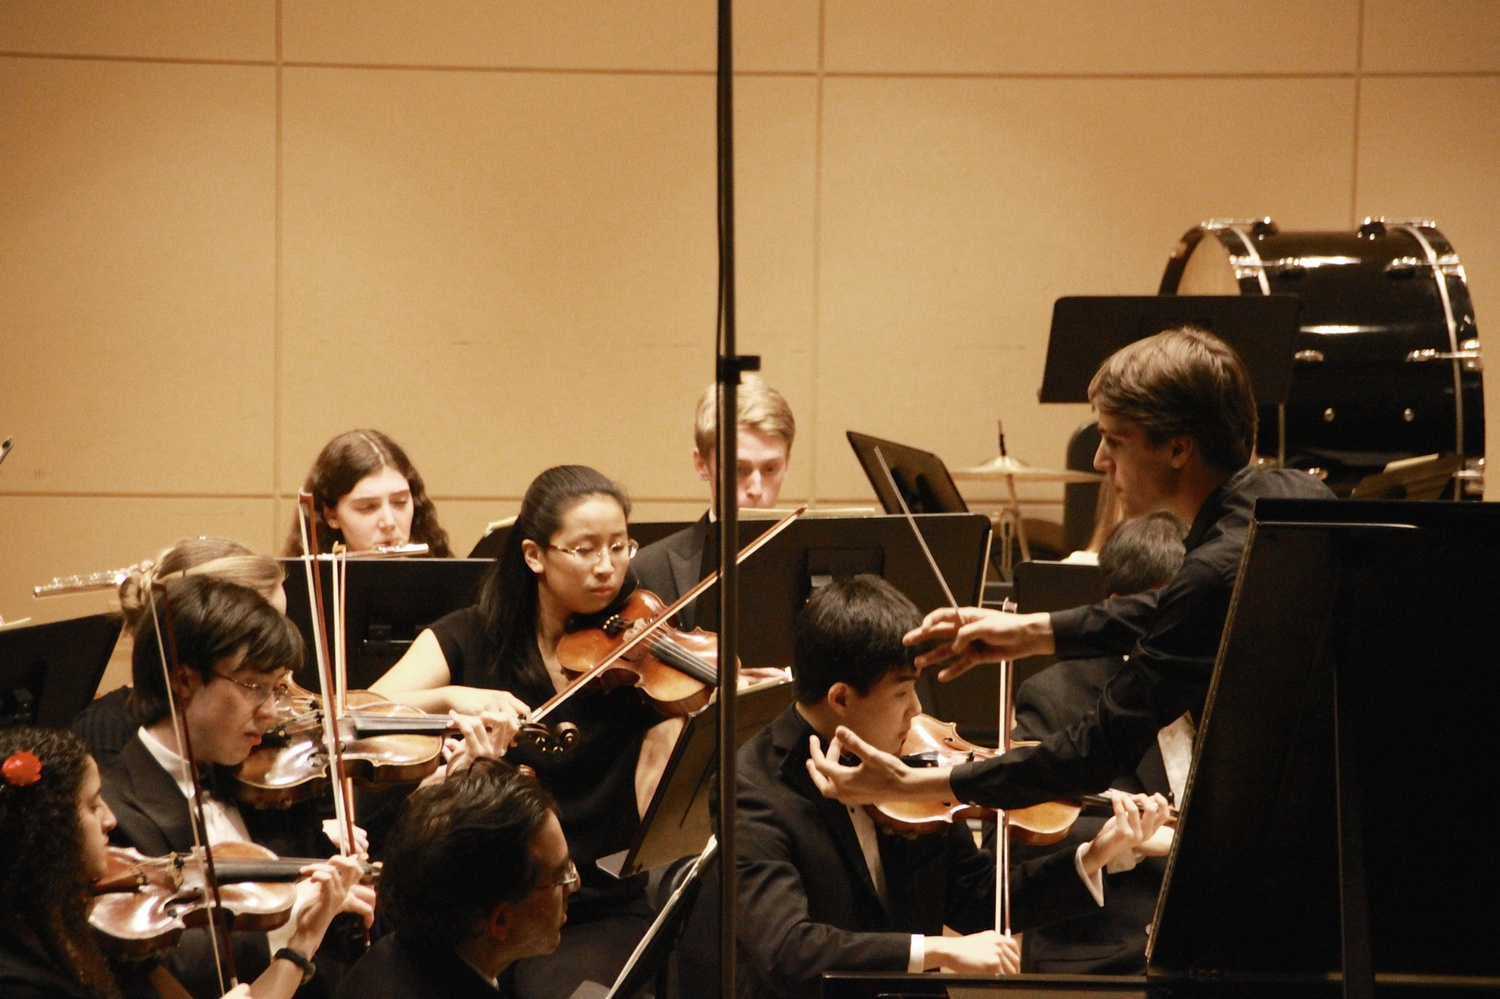 Sasha G. Scolnik-Brower '17 (far right) conducts the Bach Society Orchestra.